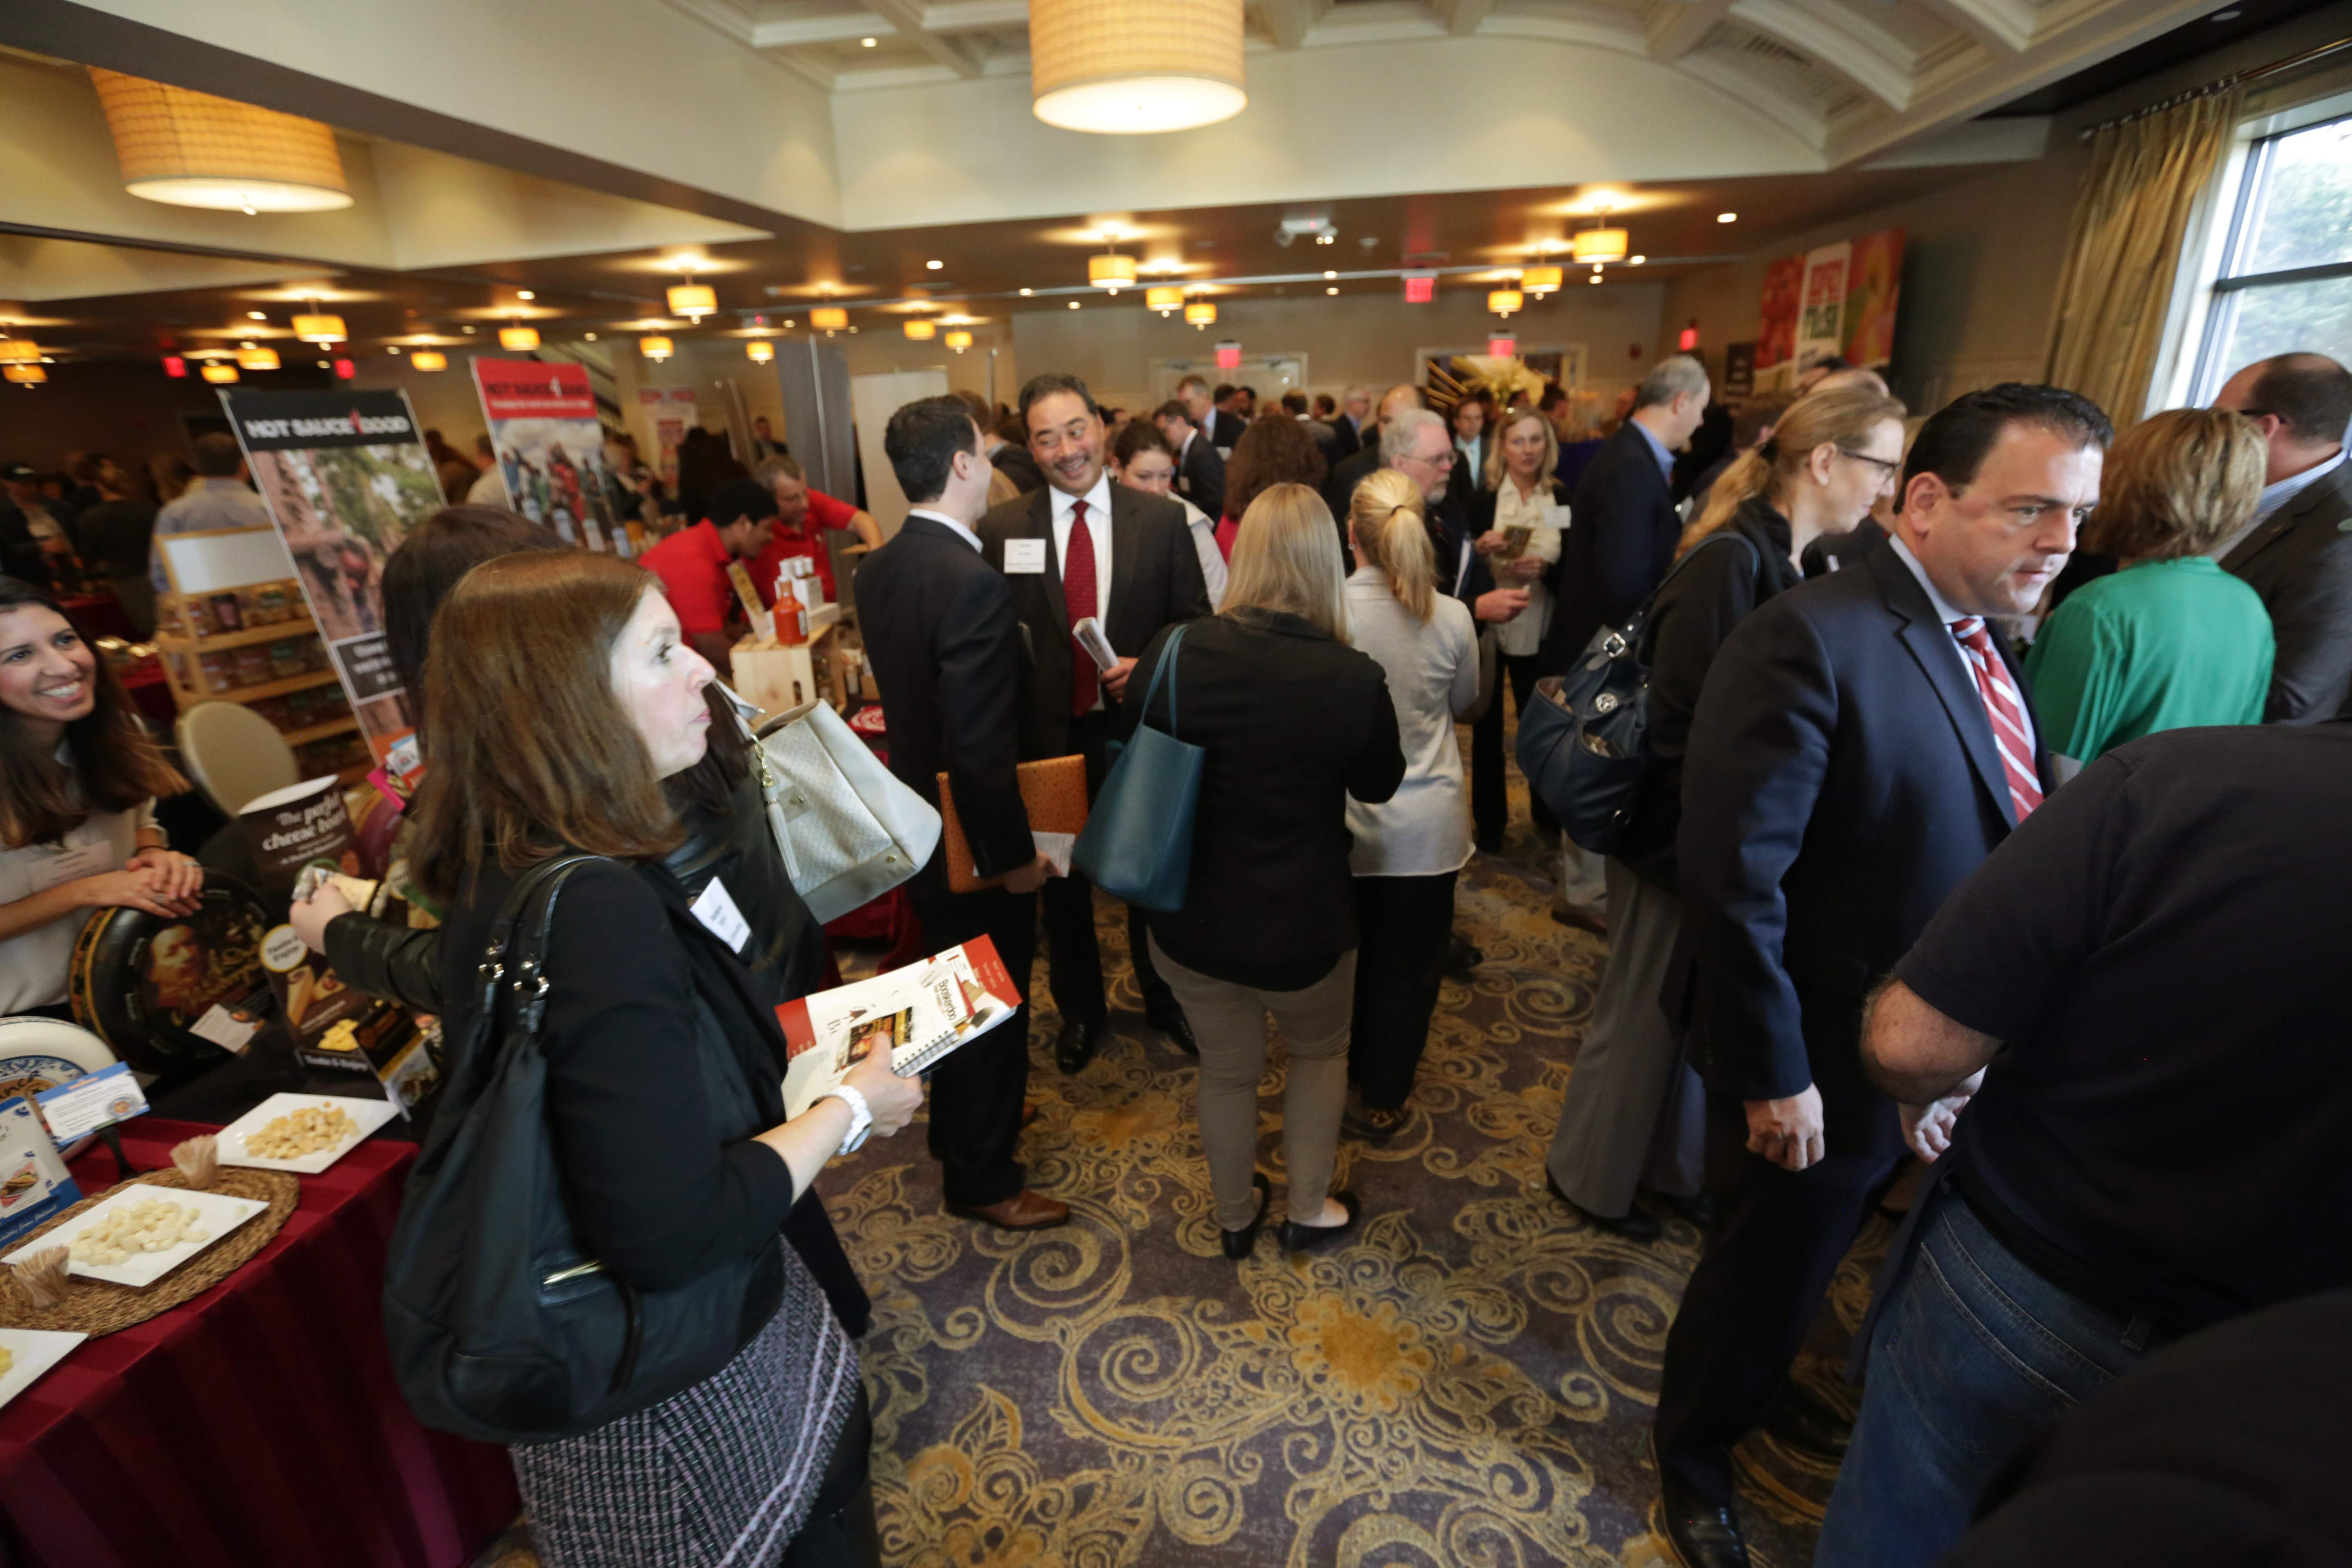 The exhibition hall was packed at the FoodBizNJ event.